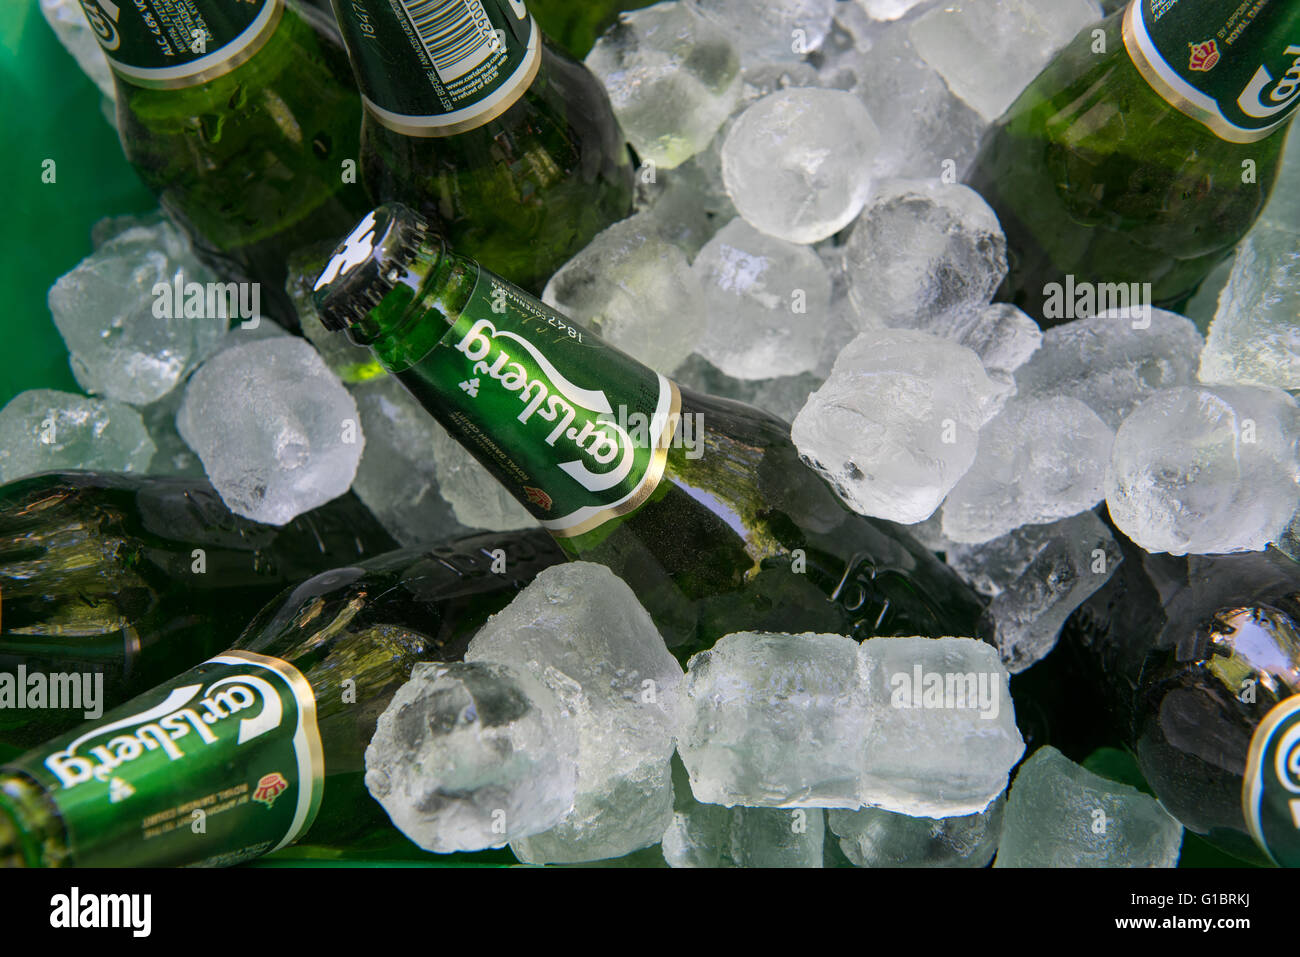 Nicosia, Cyprus - May 7 2016: Small green bottles of famous Carlsberg beer on ice - Stock Image